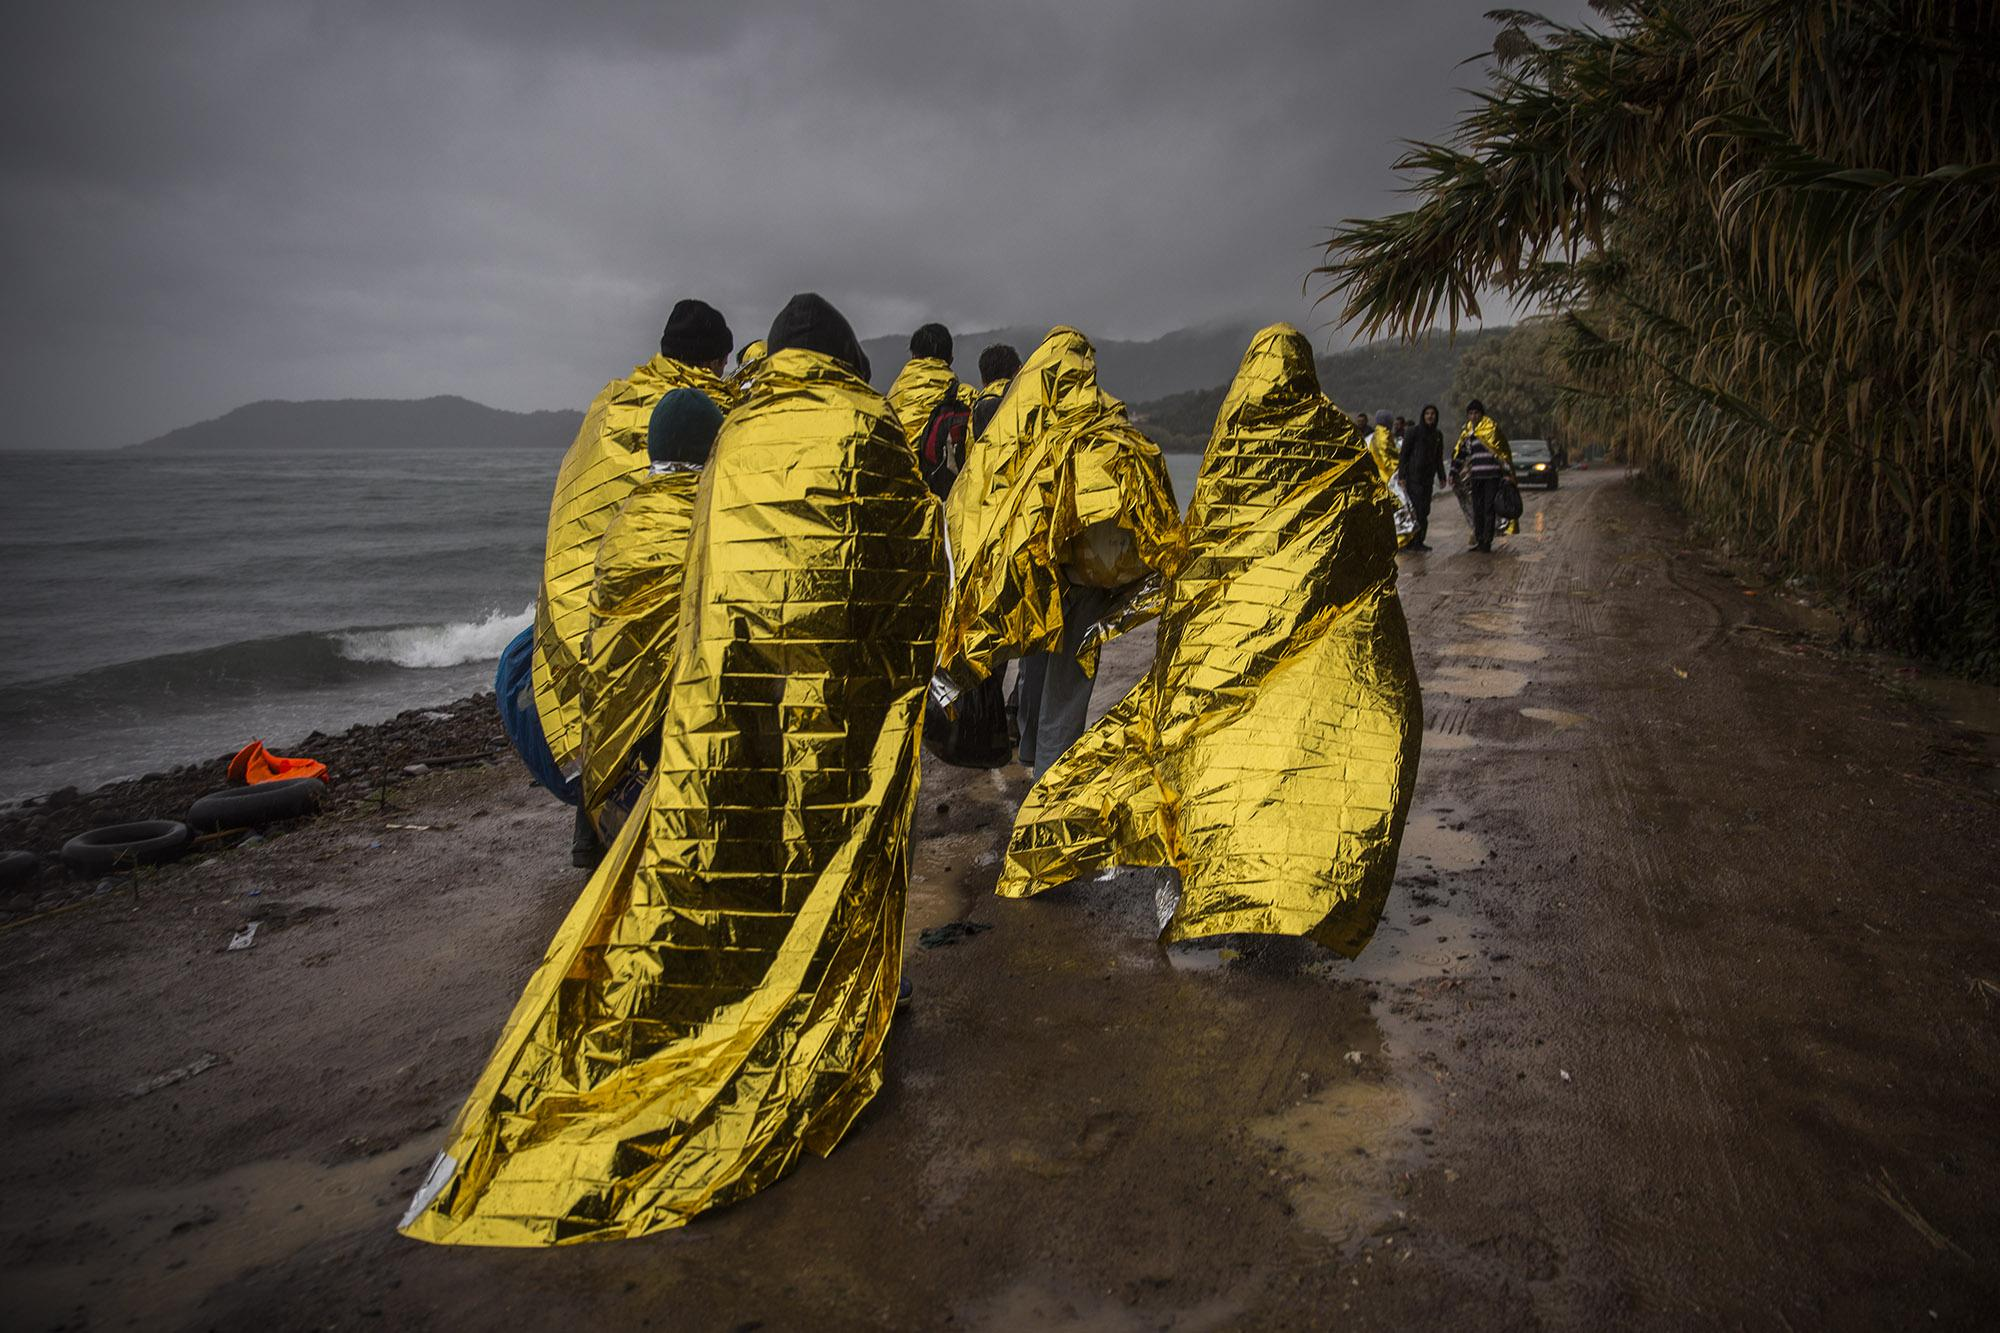 Men cover themselves with thermal blankets after crossing the Aegean Sea aboard a rubber boat from the Turkish coast to the northern coast of the Greek island of Lesbos, facing extremely hard weather conditions at sea, on Friday, Oct. 23, 2015. The International Office for Migration said over that week Greece experienced the largest single weekly influx of migrants and refugees in 2015, at an average of some 9,600 per day. (© Santi Palacios)